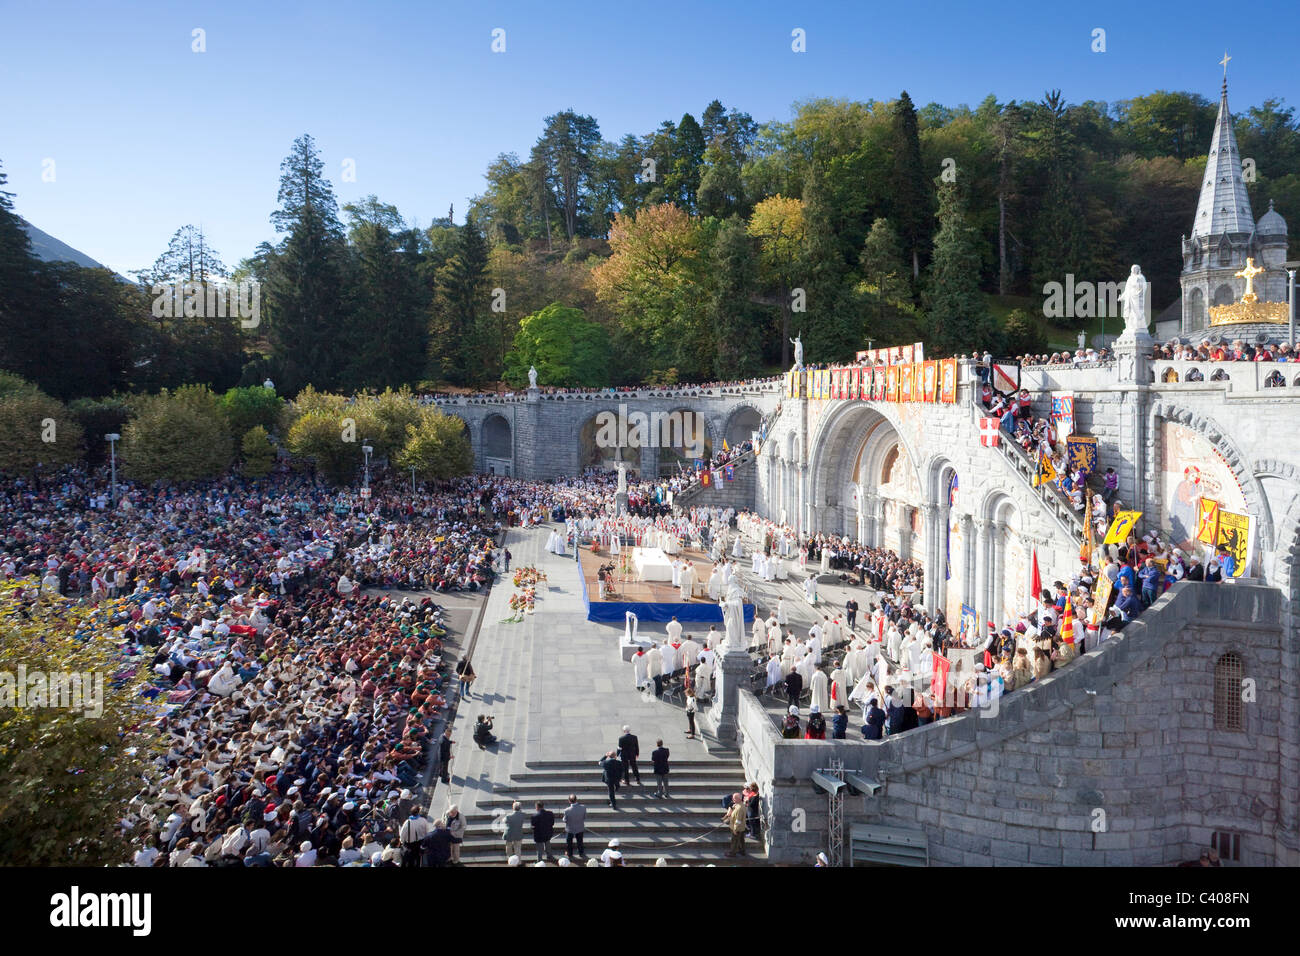 France, Europe, Lourdes, Pyrenees, place of pilgrimage, hope, miracle, disabled, hinders, believers, creditors, - Stock Image